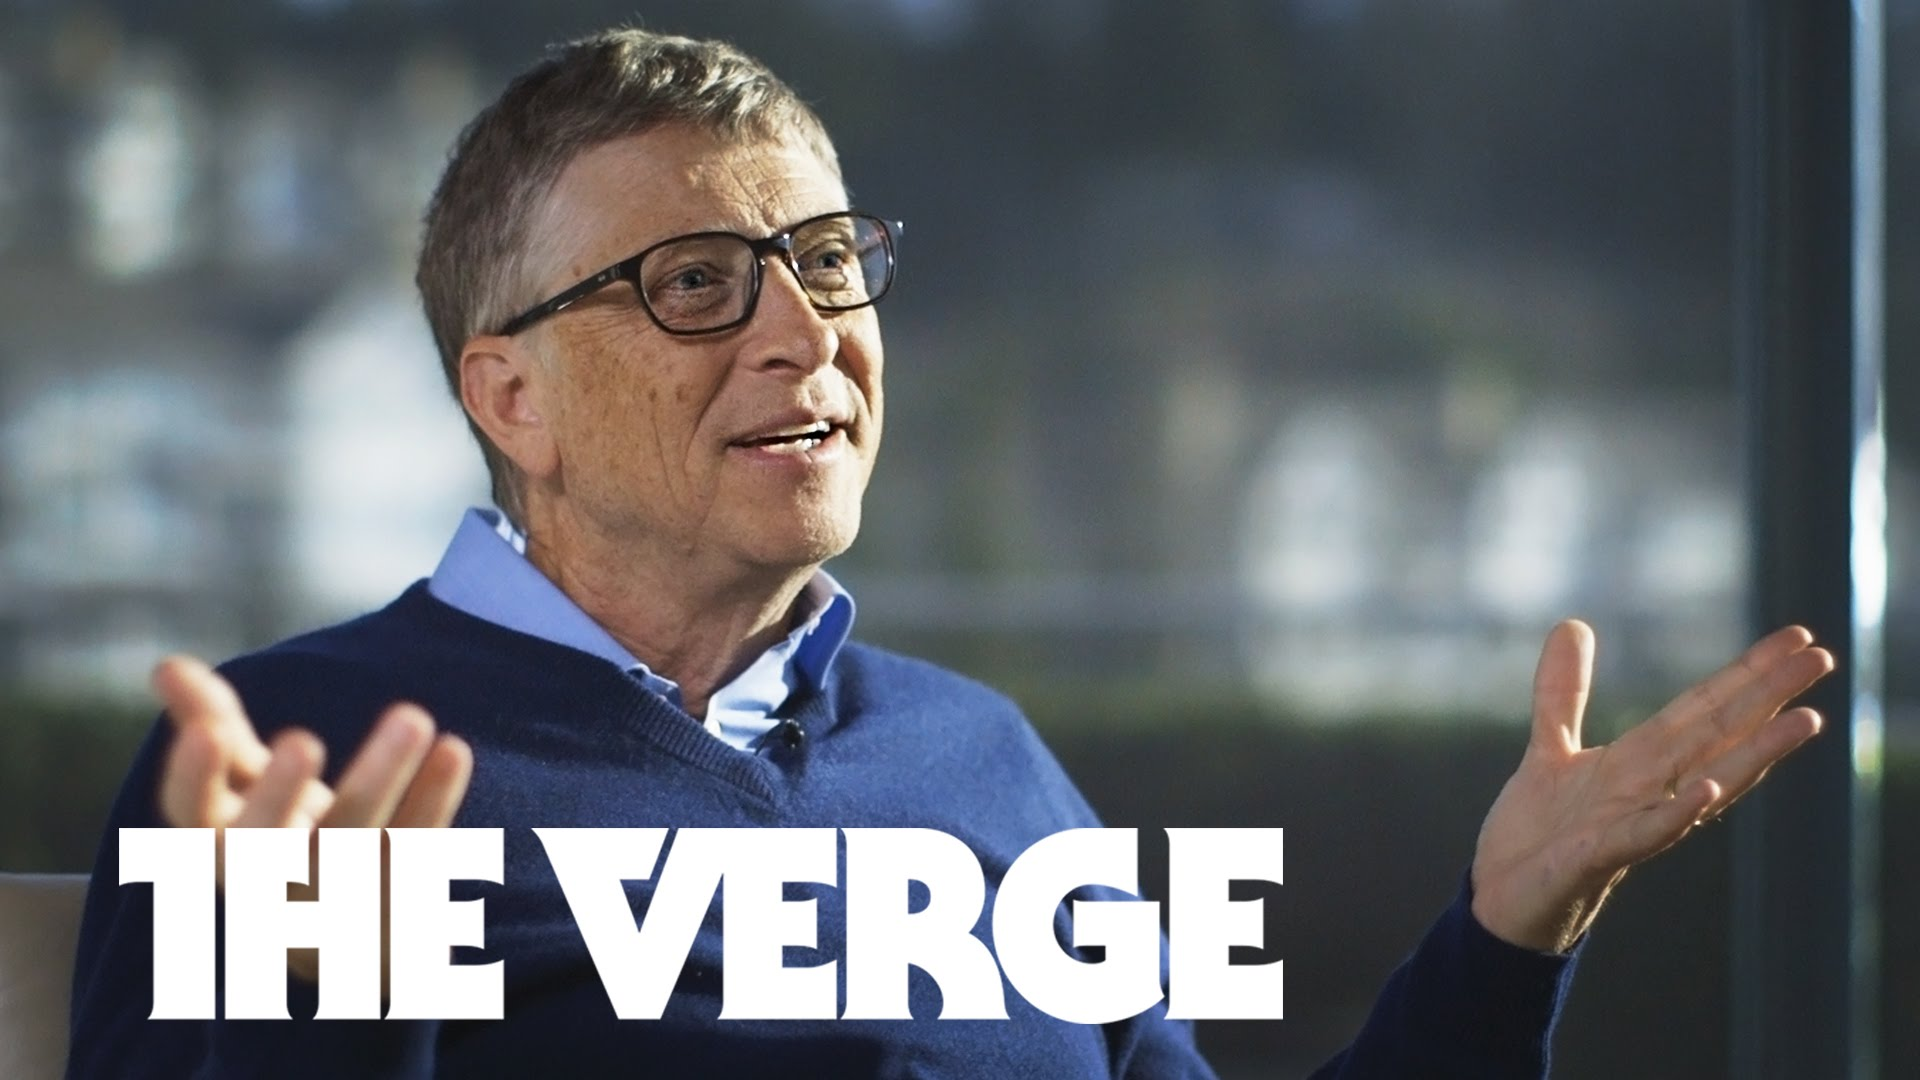 Gates Foundation: Improving the lives of the poor through technology